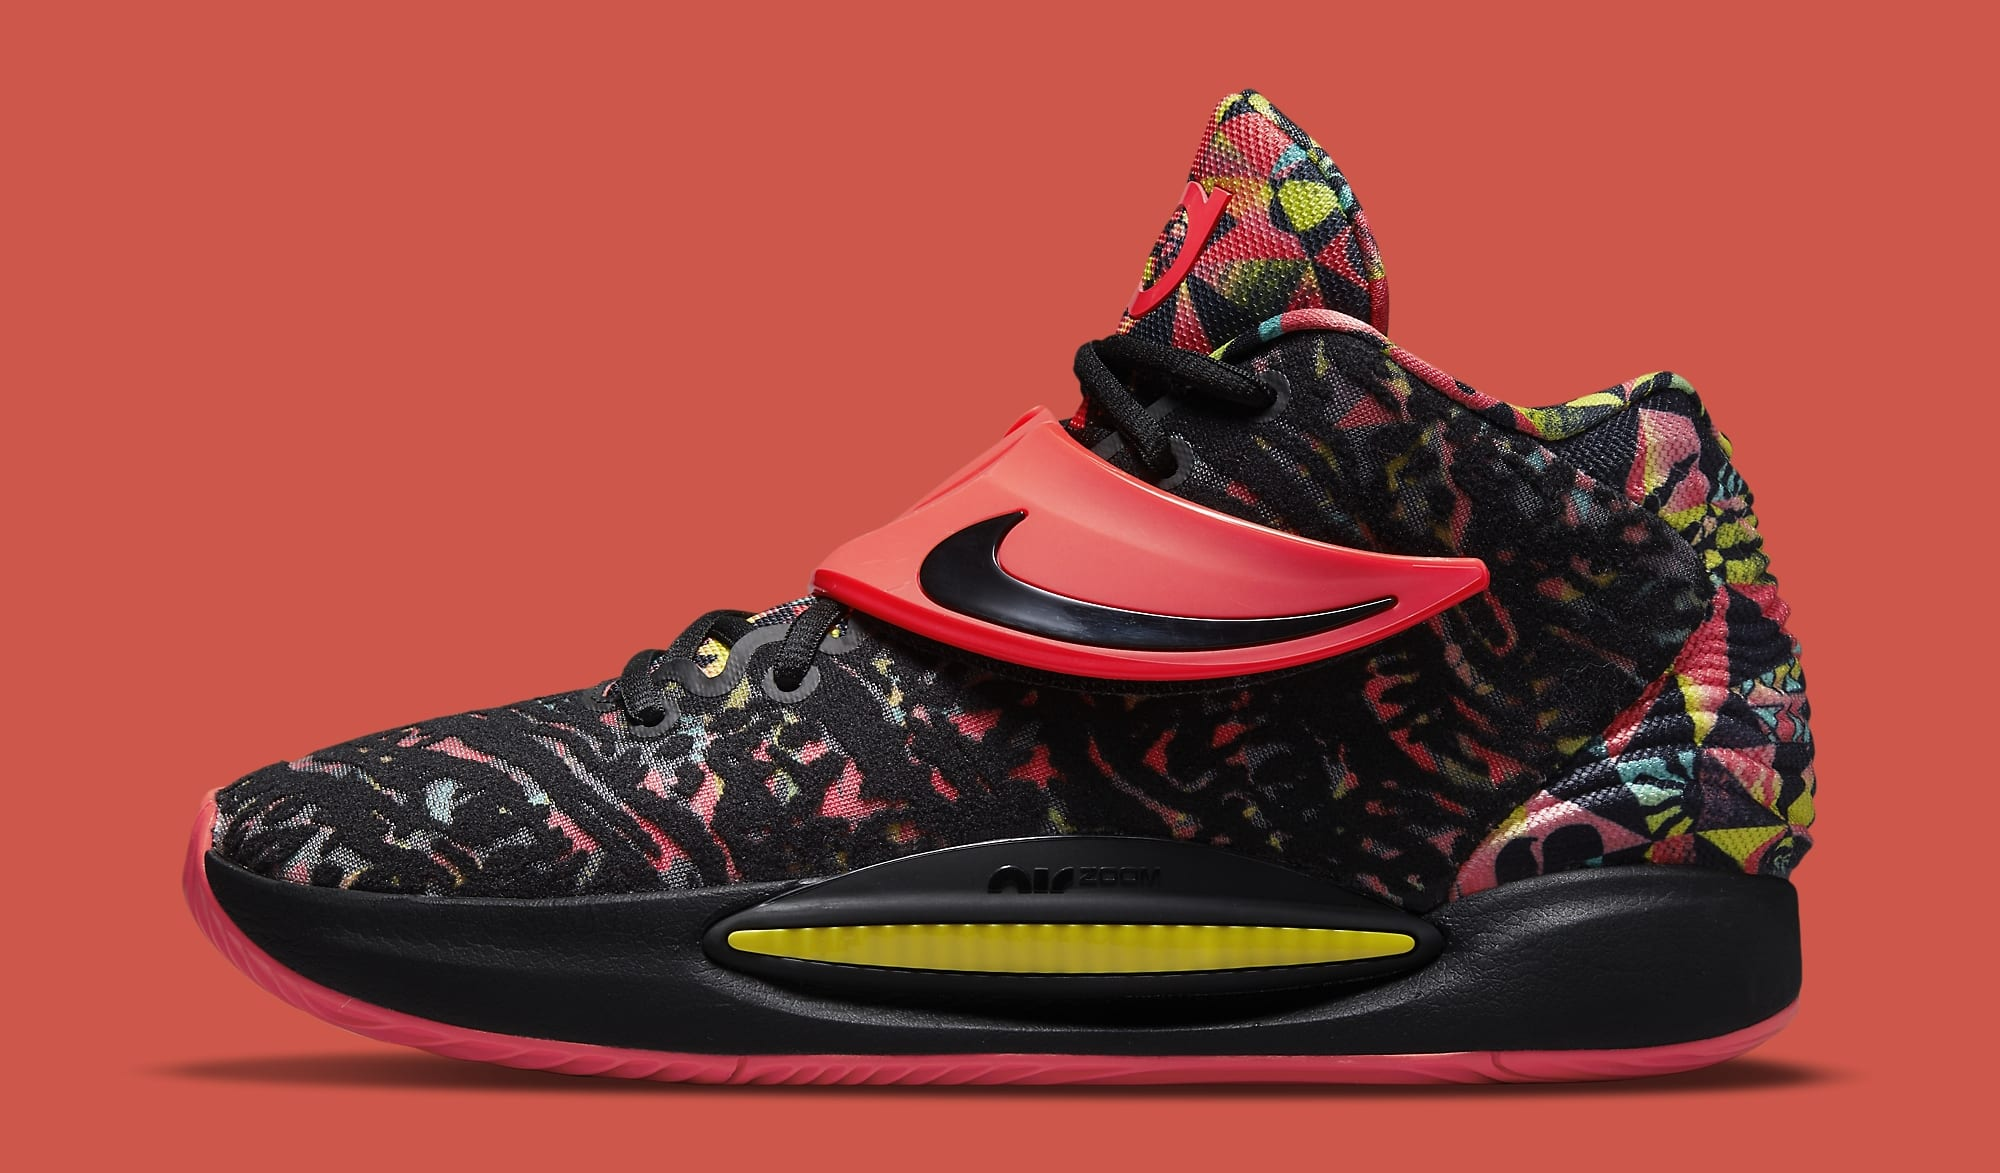 Nike KD 14 'Ky-D' CW3935-002 Lateral